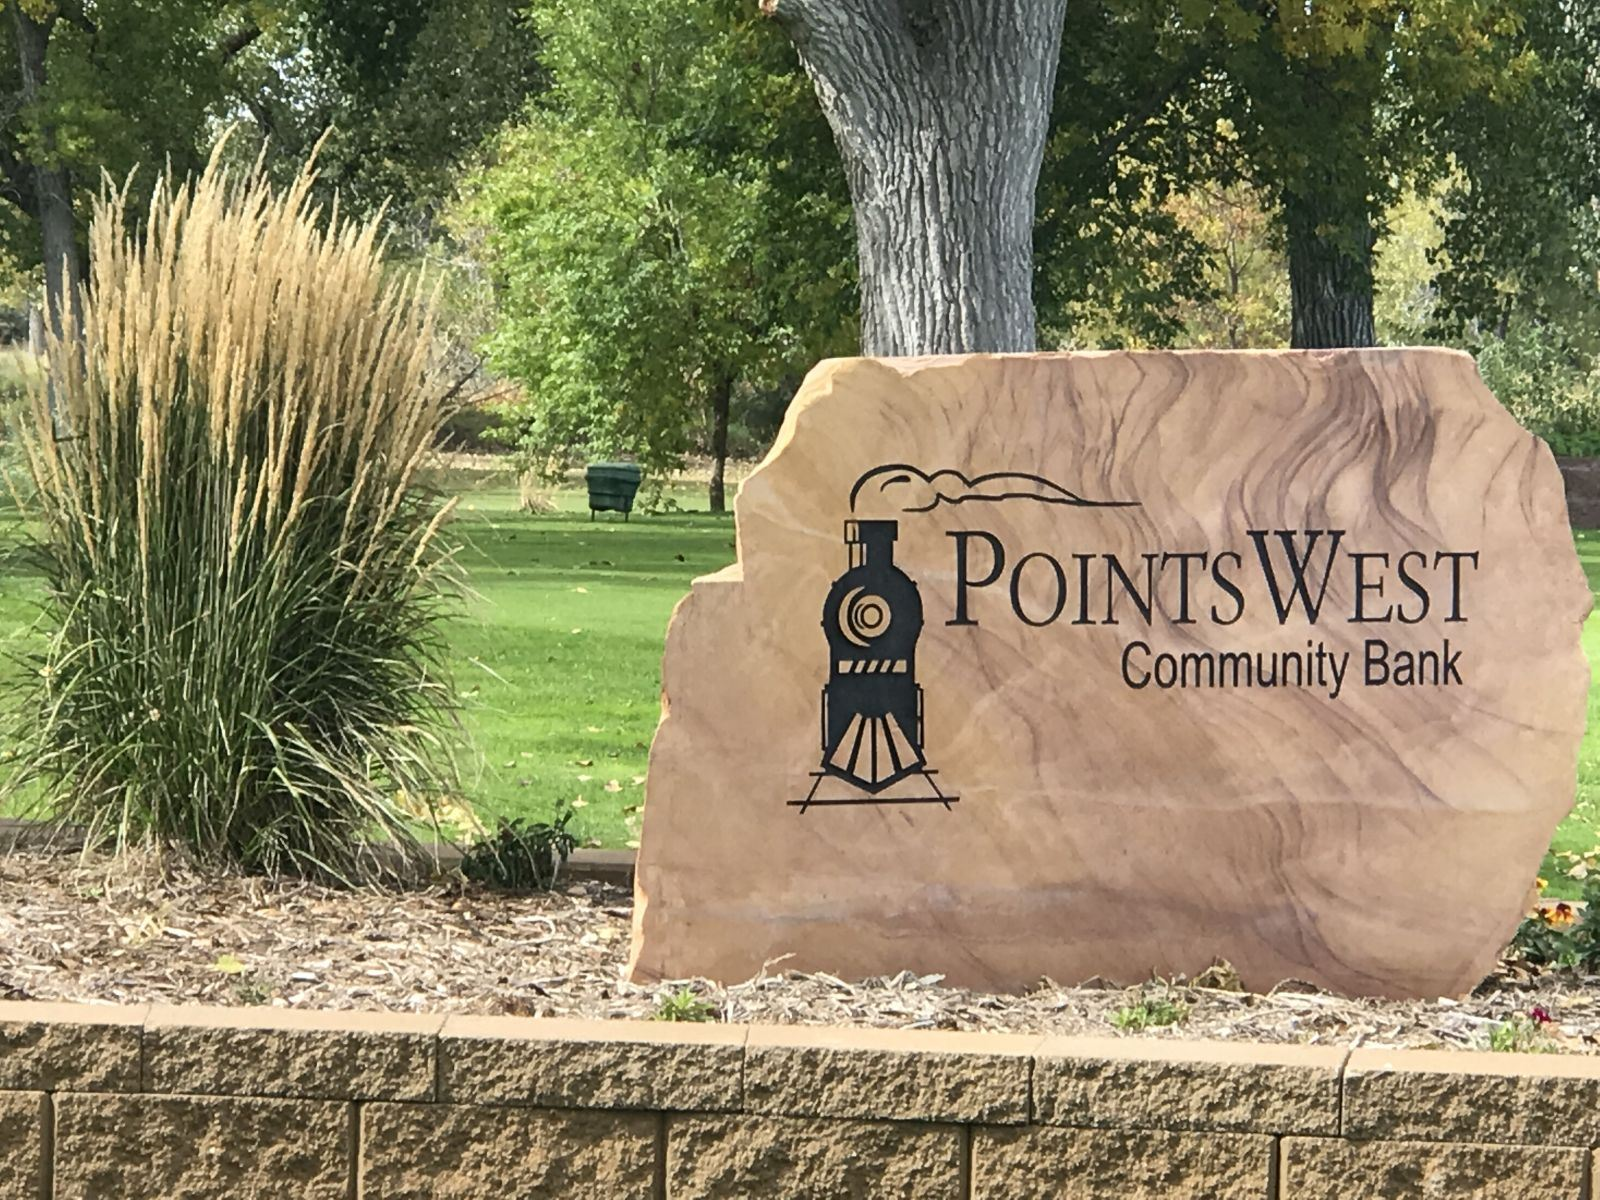 Points West Community Bank Stone Sign in Planter Box